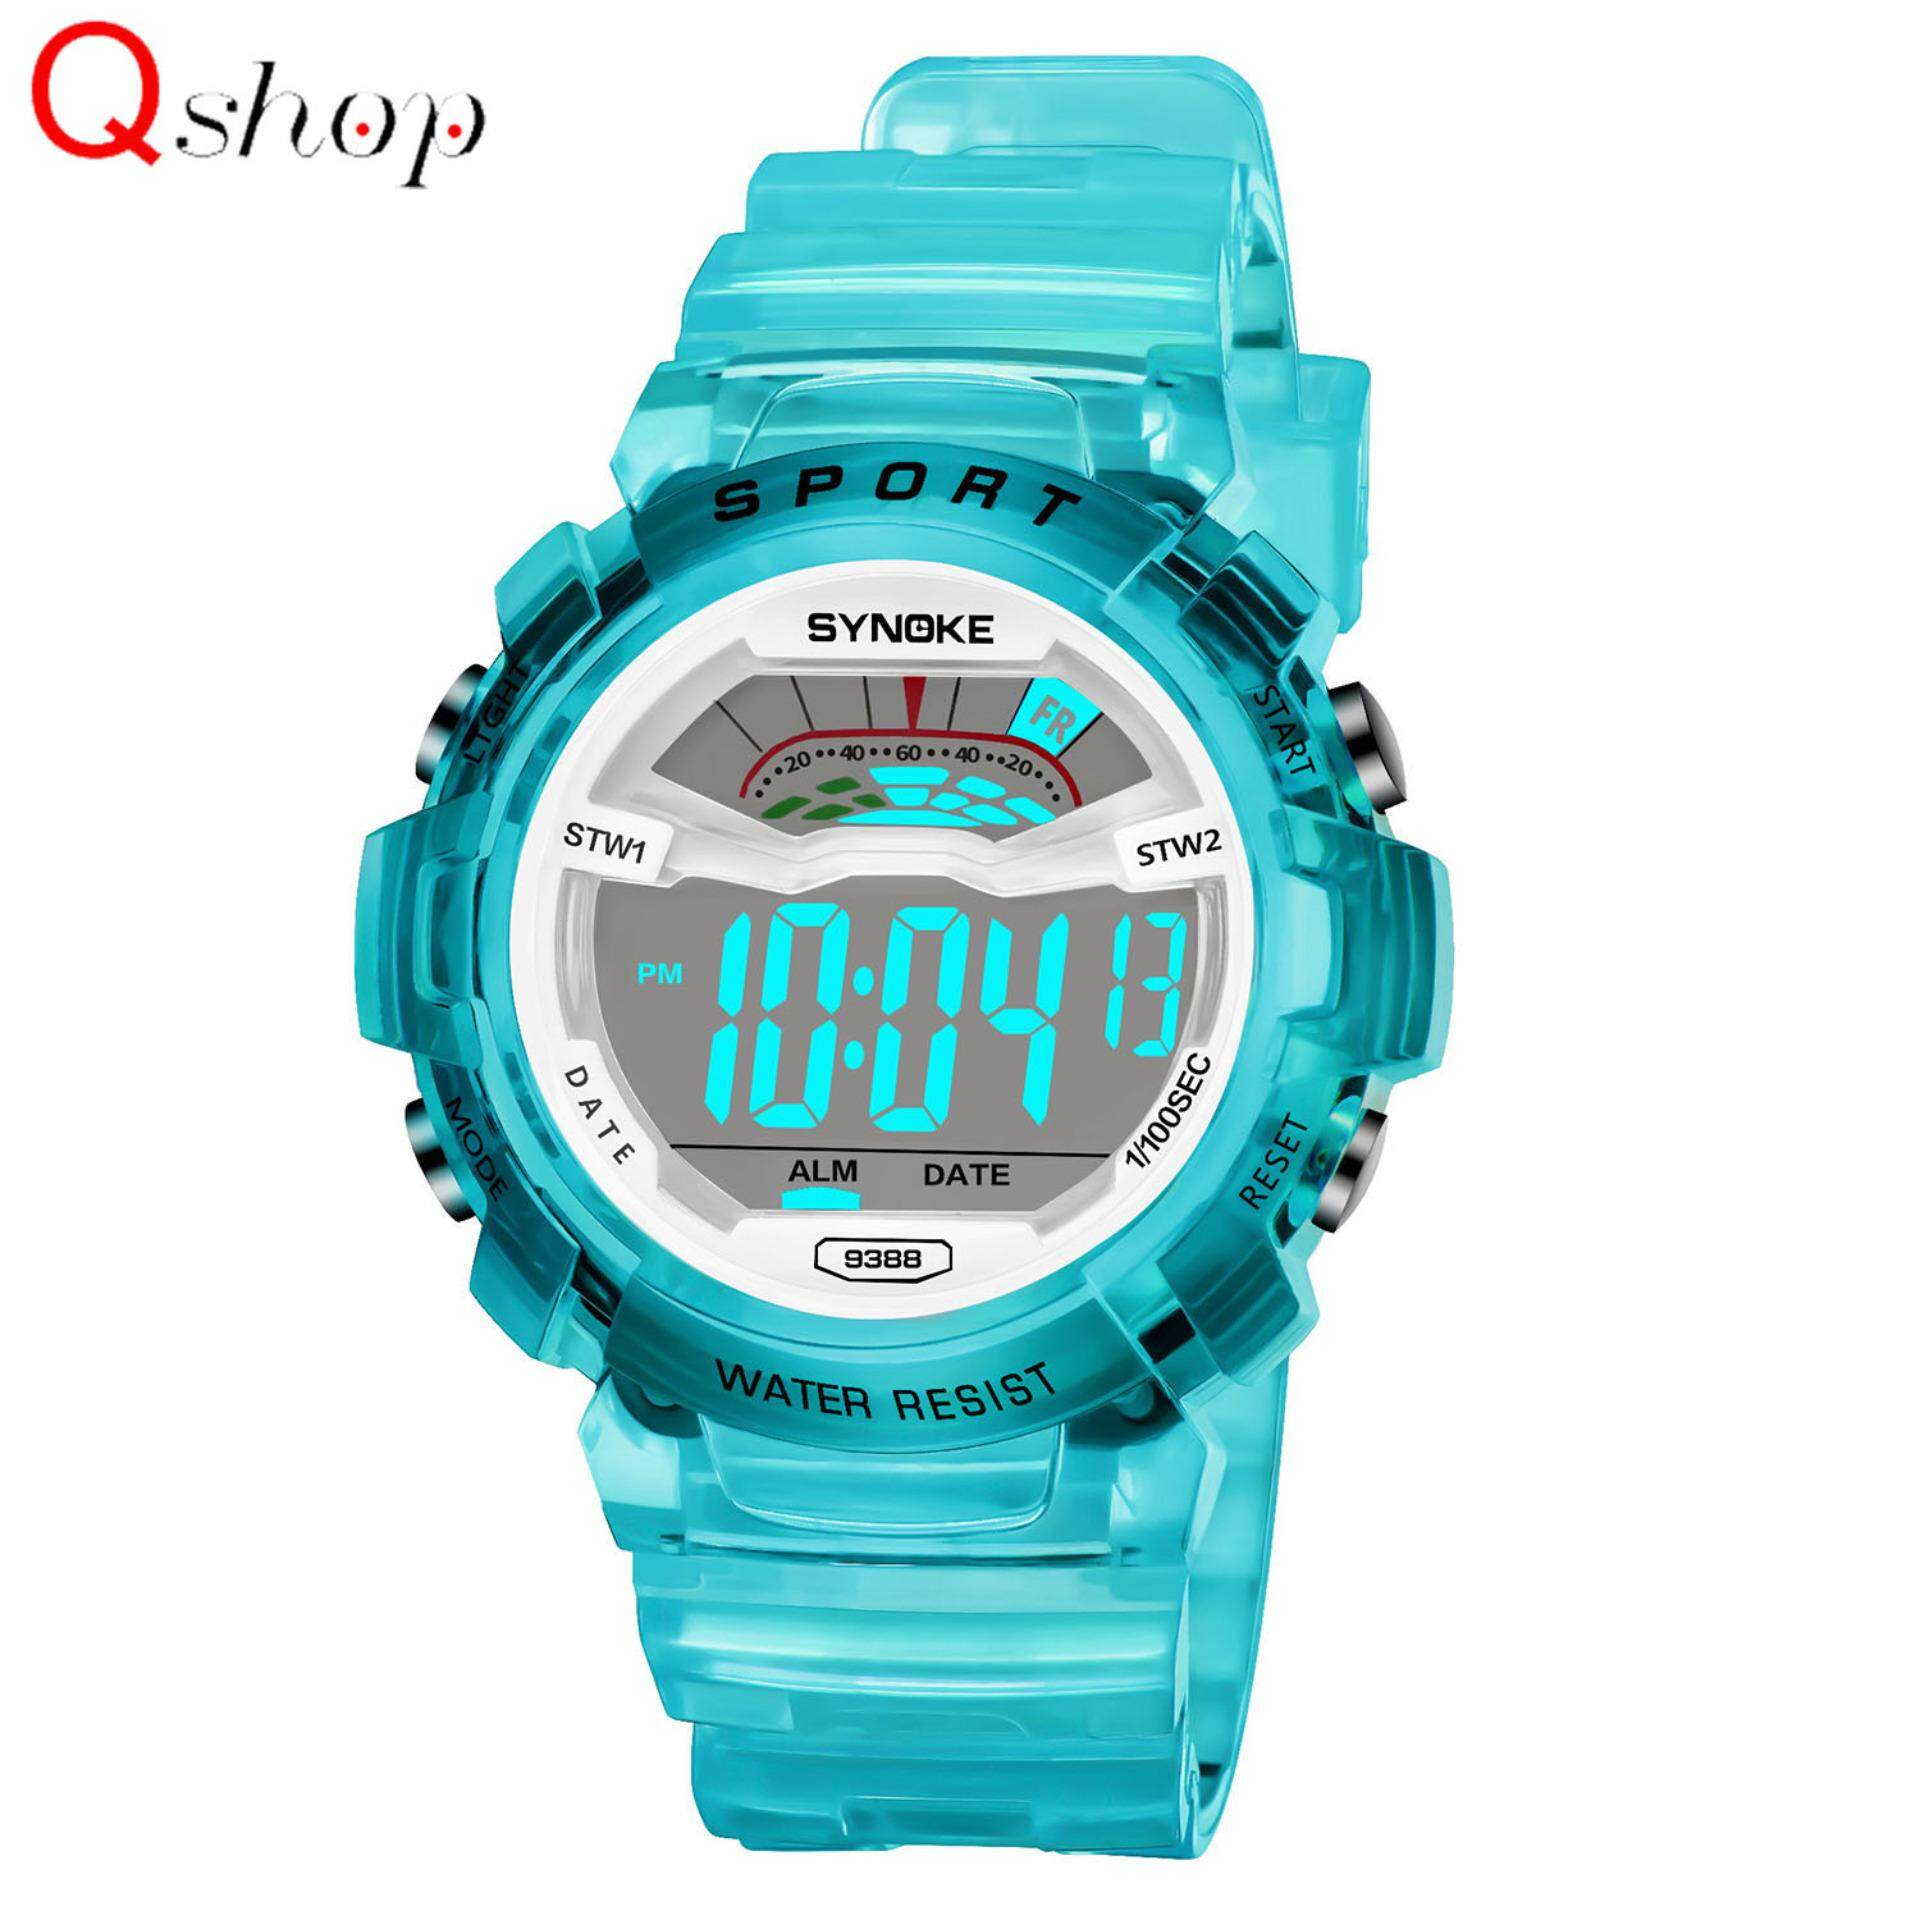 Q-shop Kids Multifunction Digital Sport Watch,High Quality 30m Waterproof  Watch Electronic LED